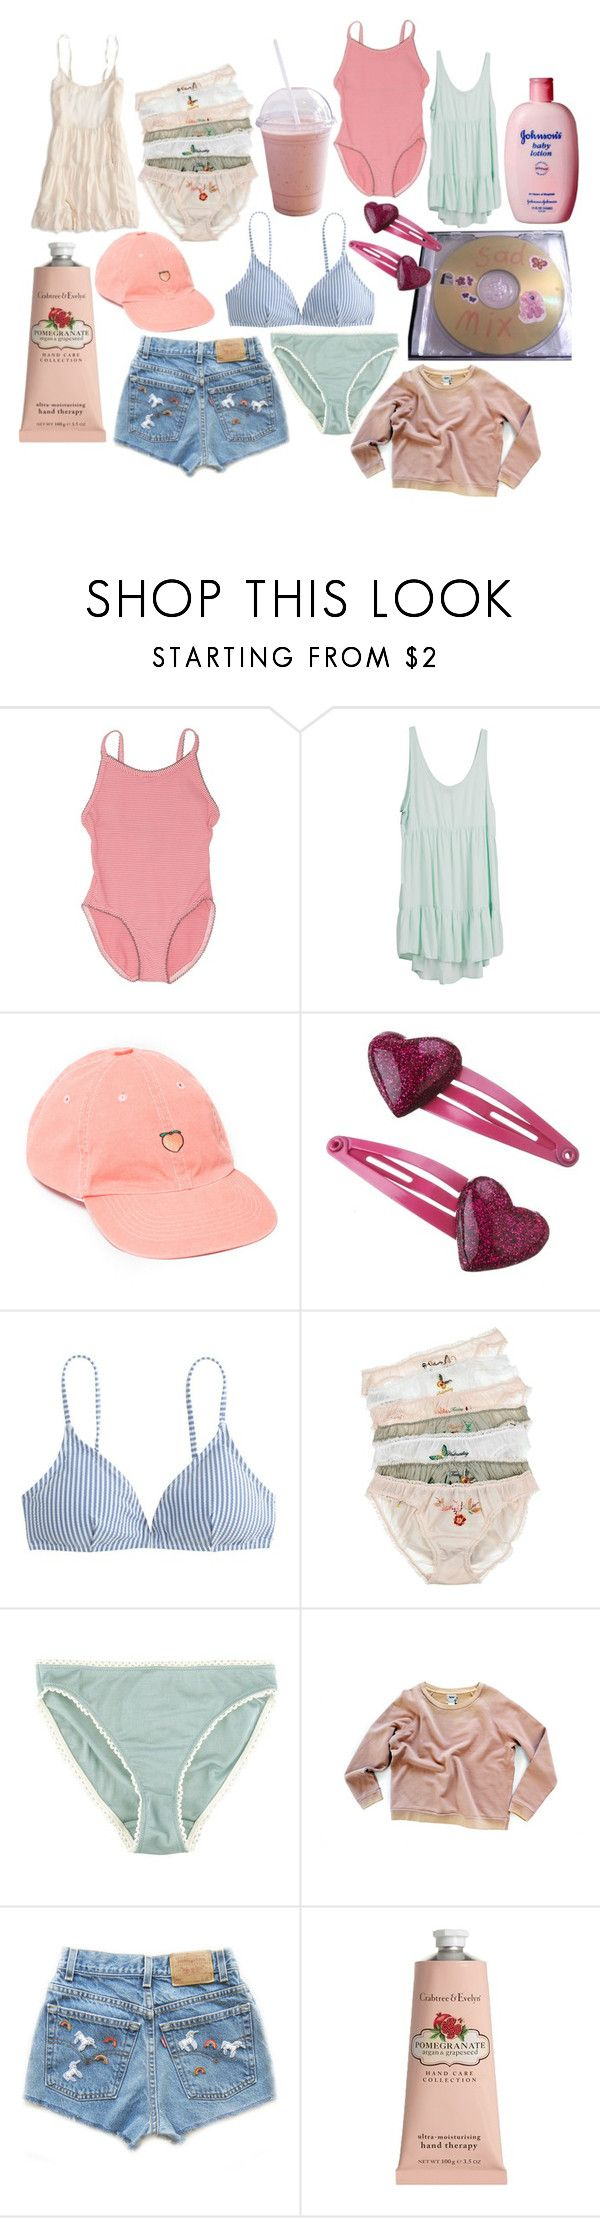 """""""a sixteen year-old nymphet"""" by nymphyt ❤ liked on Polyvore featuring Petit Bateau, UNIF, J.Crew, STELLA McCARTNEY, Araks, Crabtree & Evelyn and American Eagle Outfitters"""